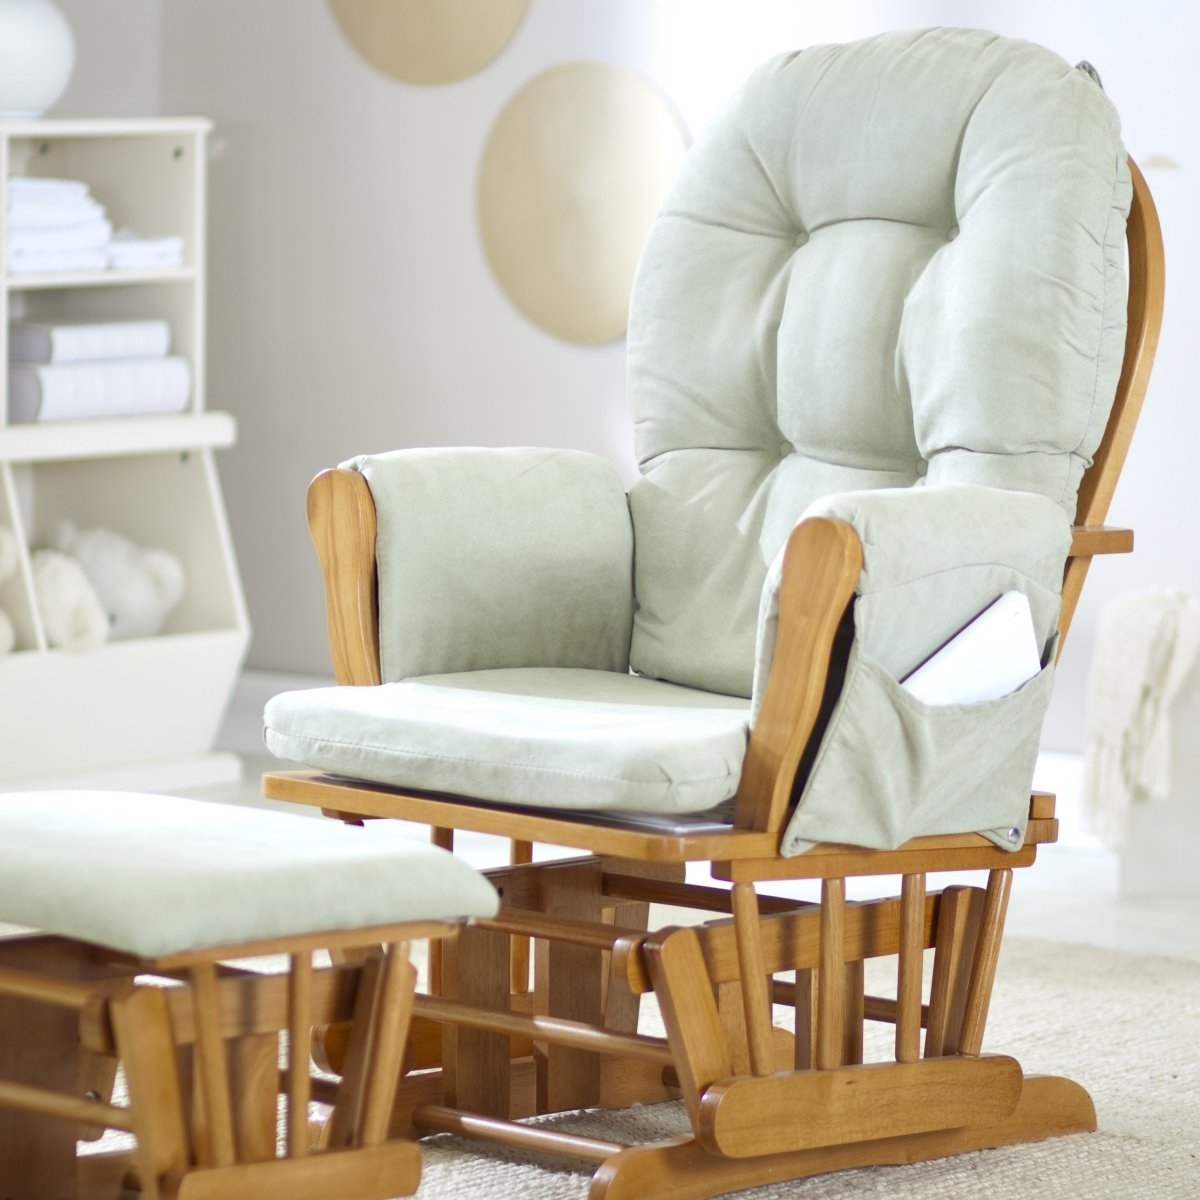 Amazing Rocking Chairs Nursery — Wilson Home Ideas : Healthy In Favorite Rocking Chairs For Nursery (View 1 of 15)